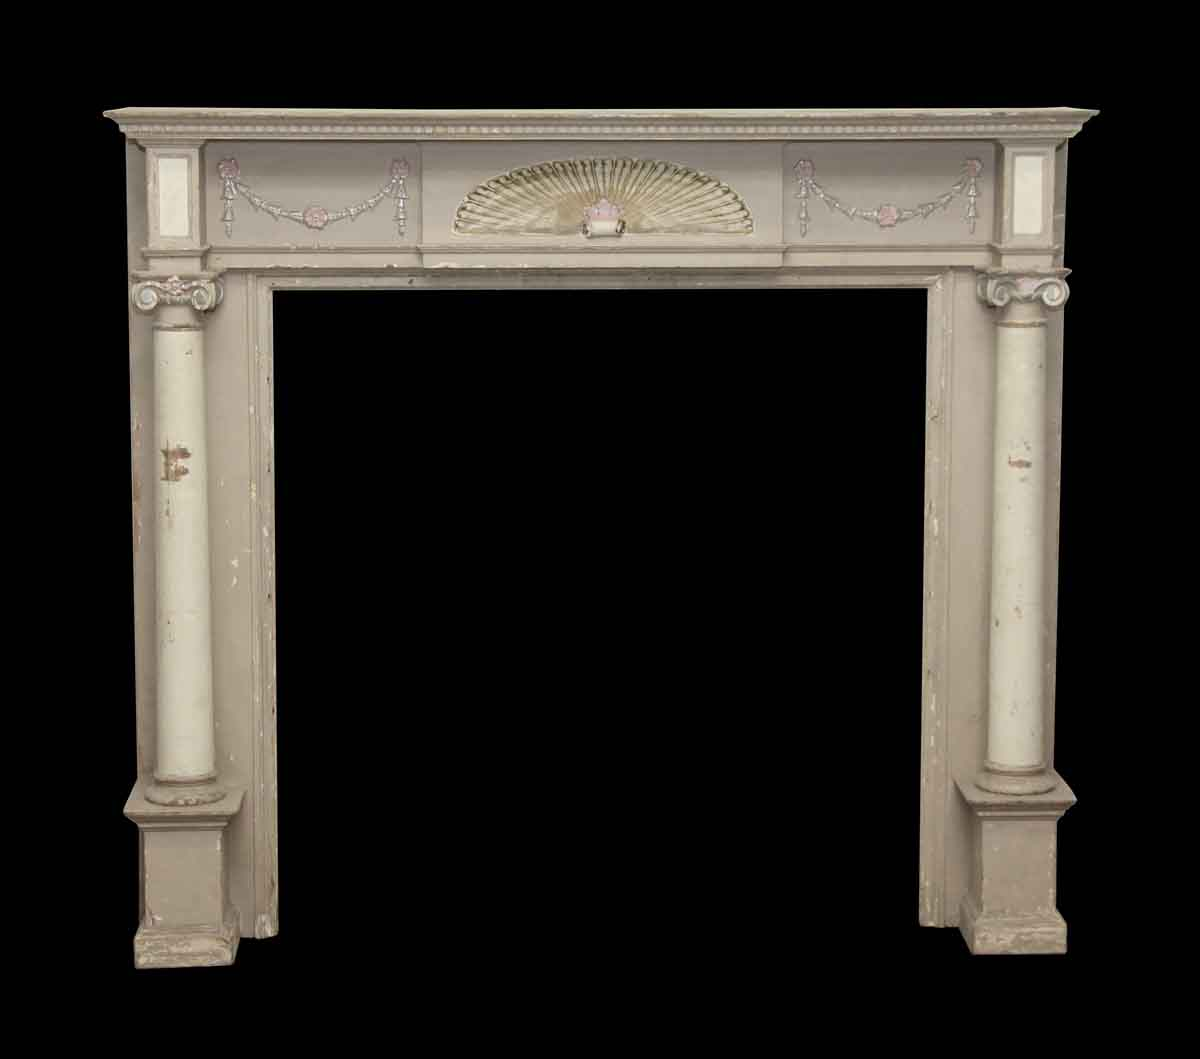 Decorative Wooden Mantel With Fan Detail Ionic Columns